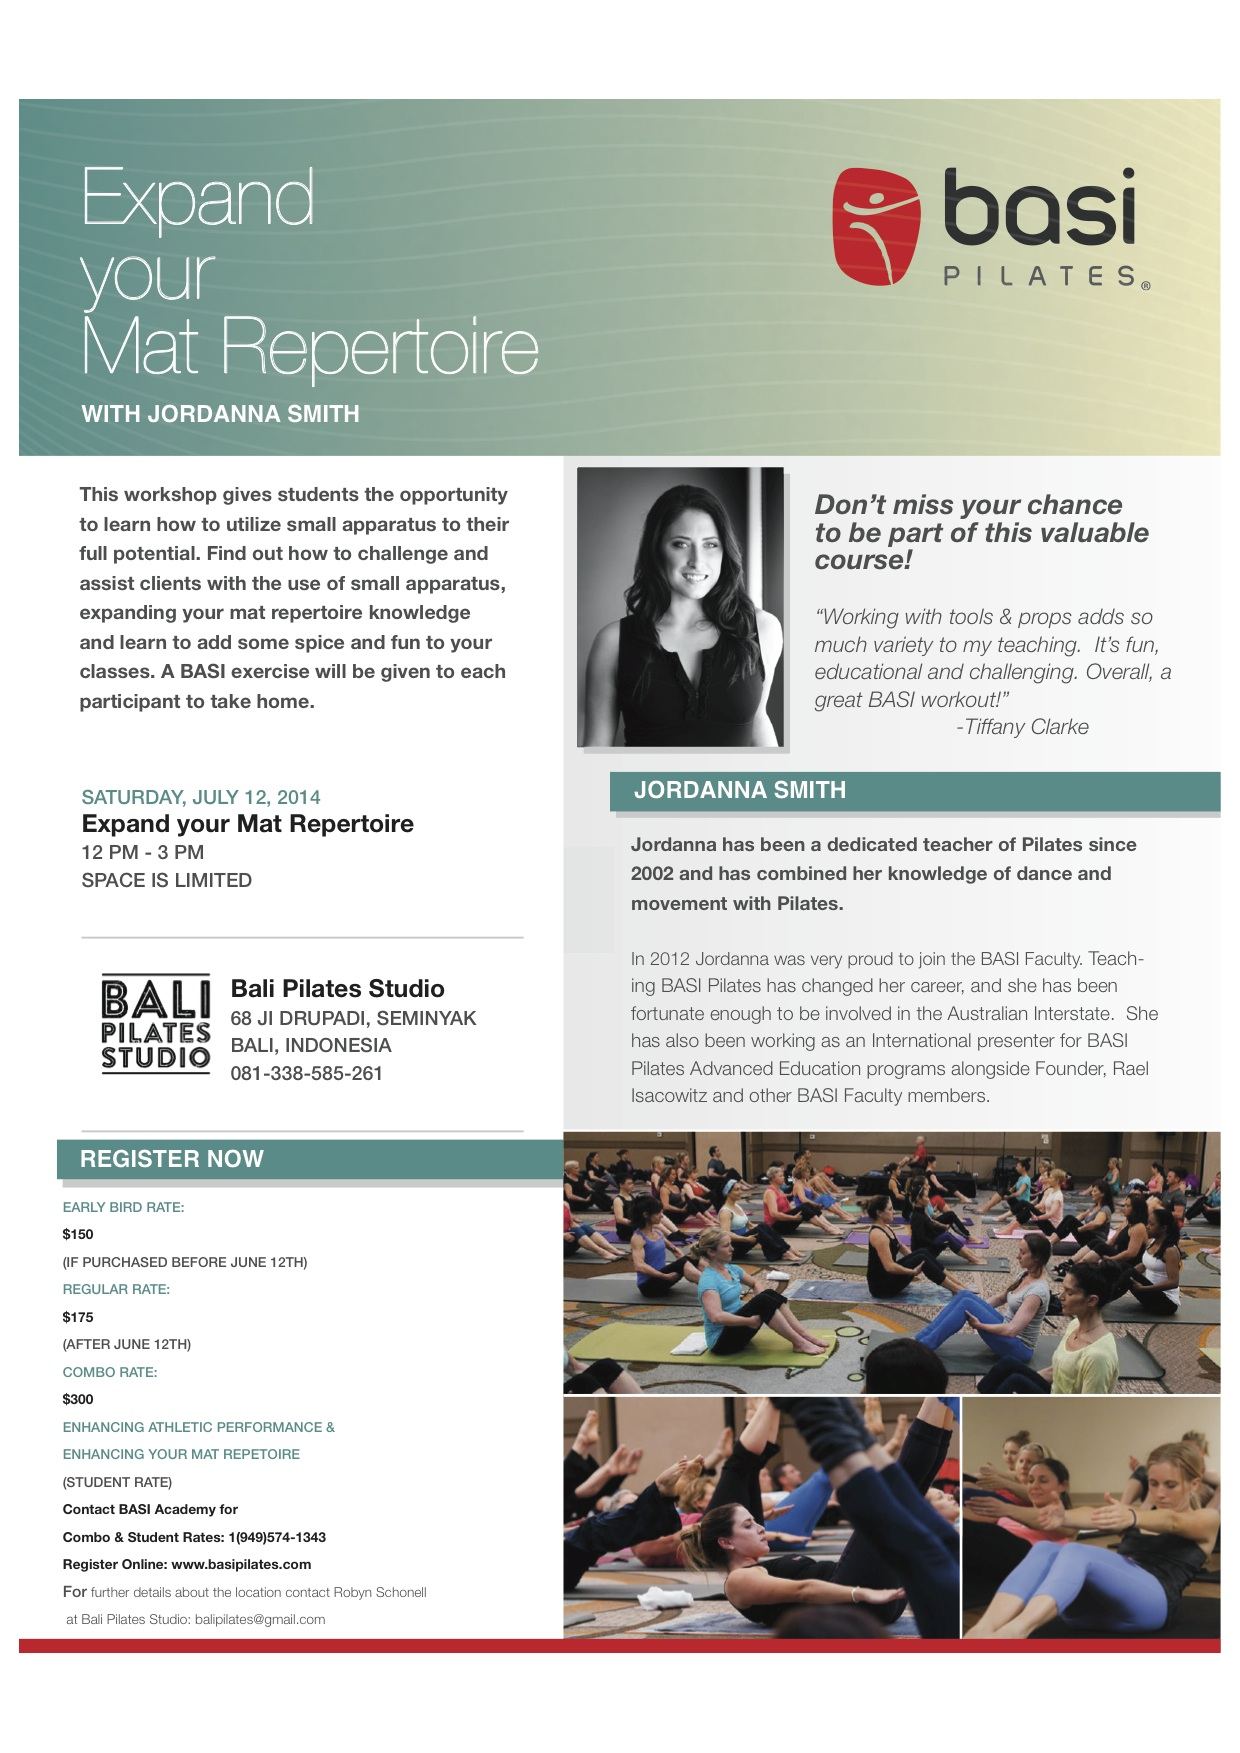 Expand your Mat Repetoire5.15.14.jpg